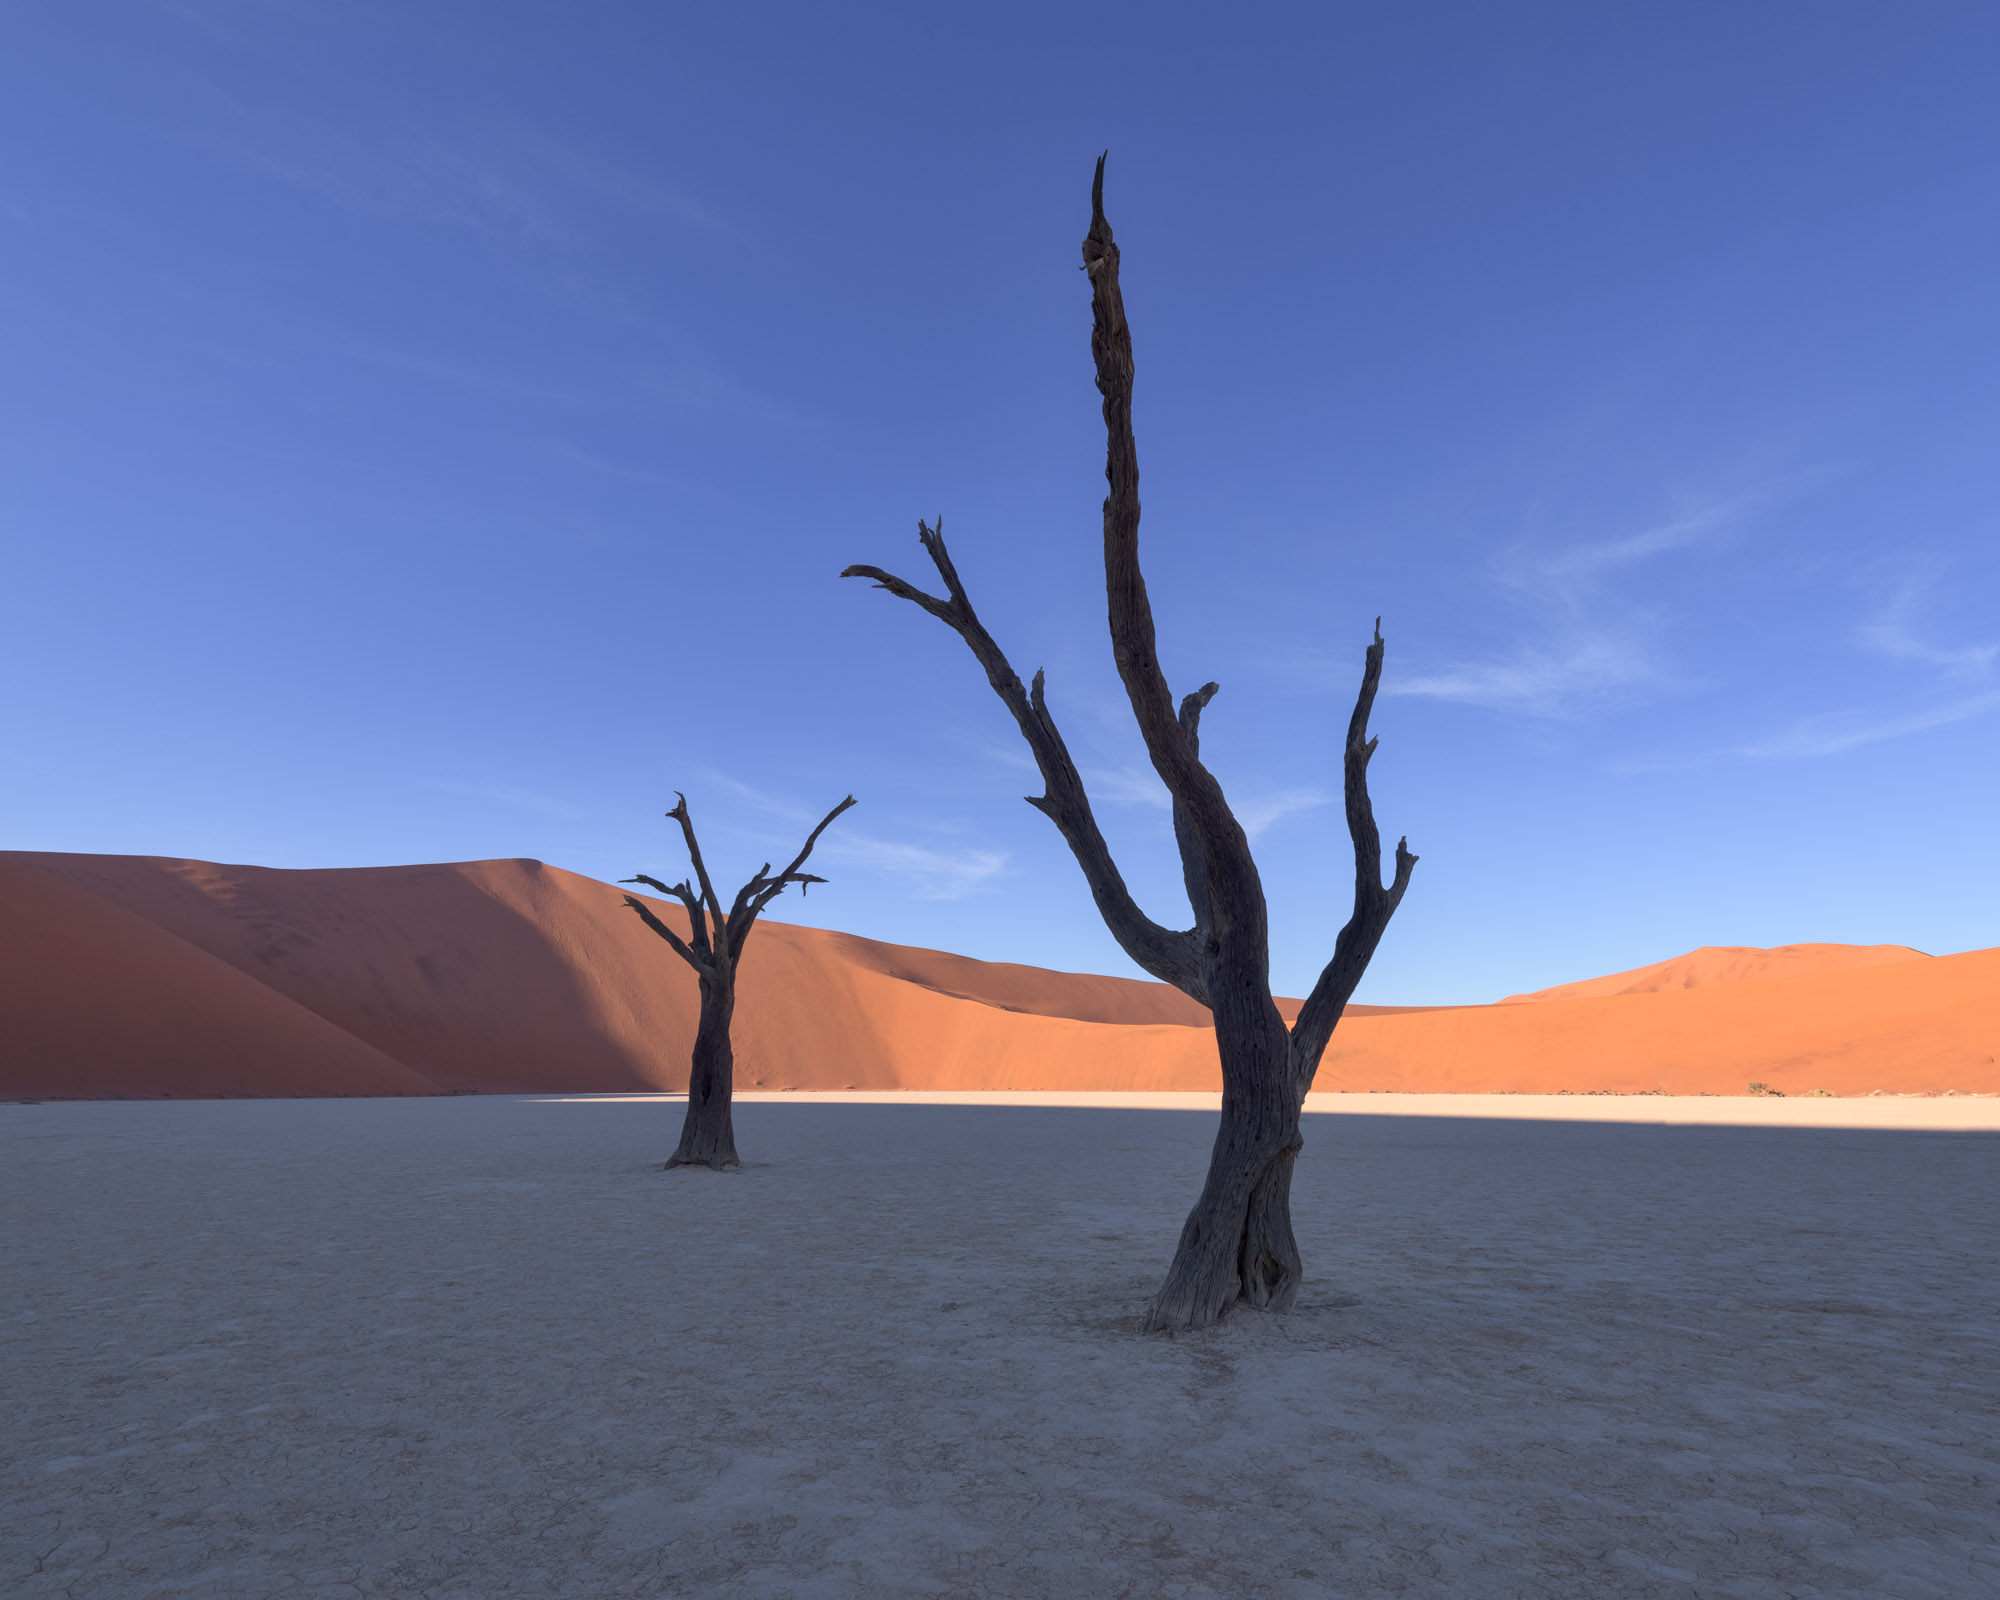 Dead Acacia Forest in Deadvlei, Namibia